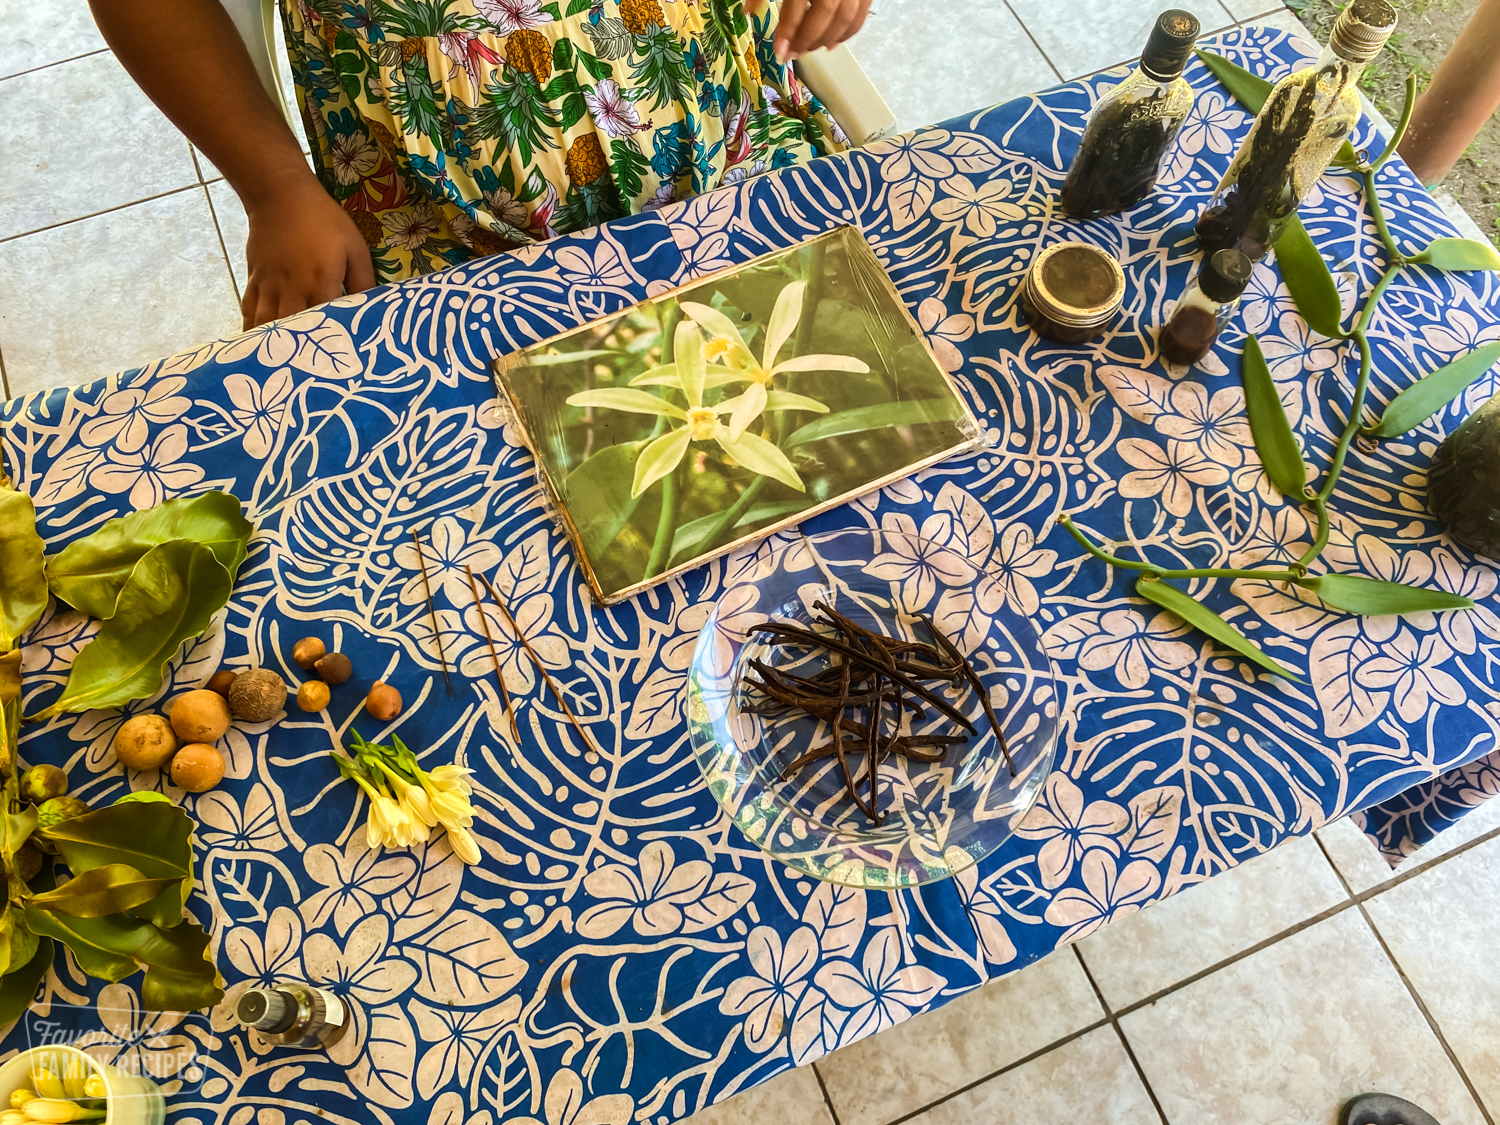 A table in Tahiti with Tahitian vanilla beans and other ingredients to make vanilla extract